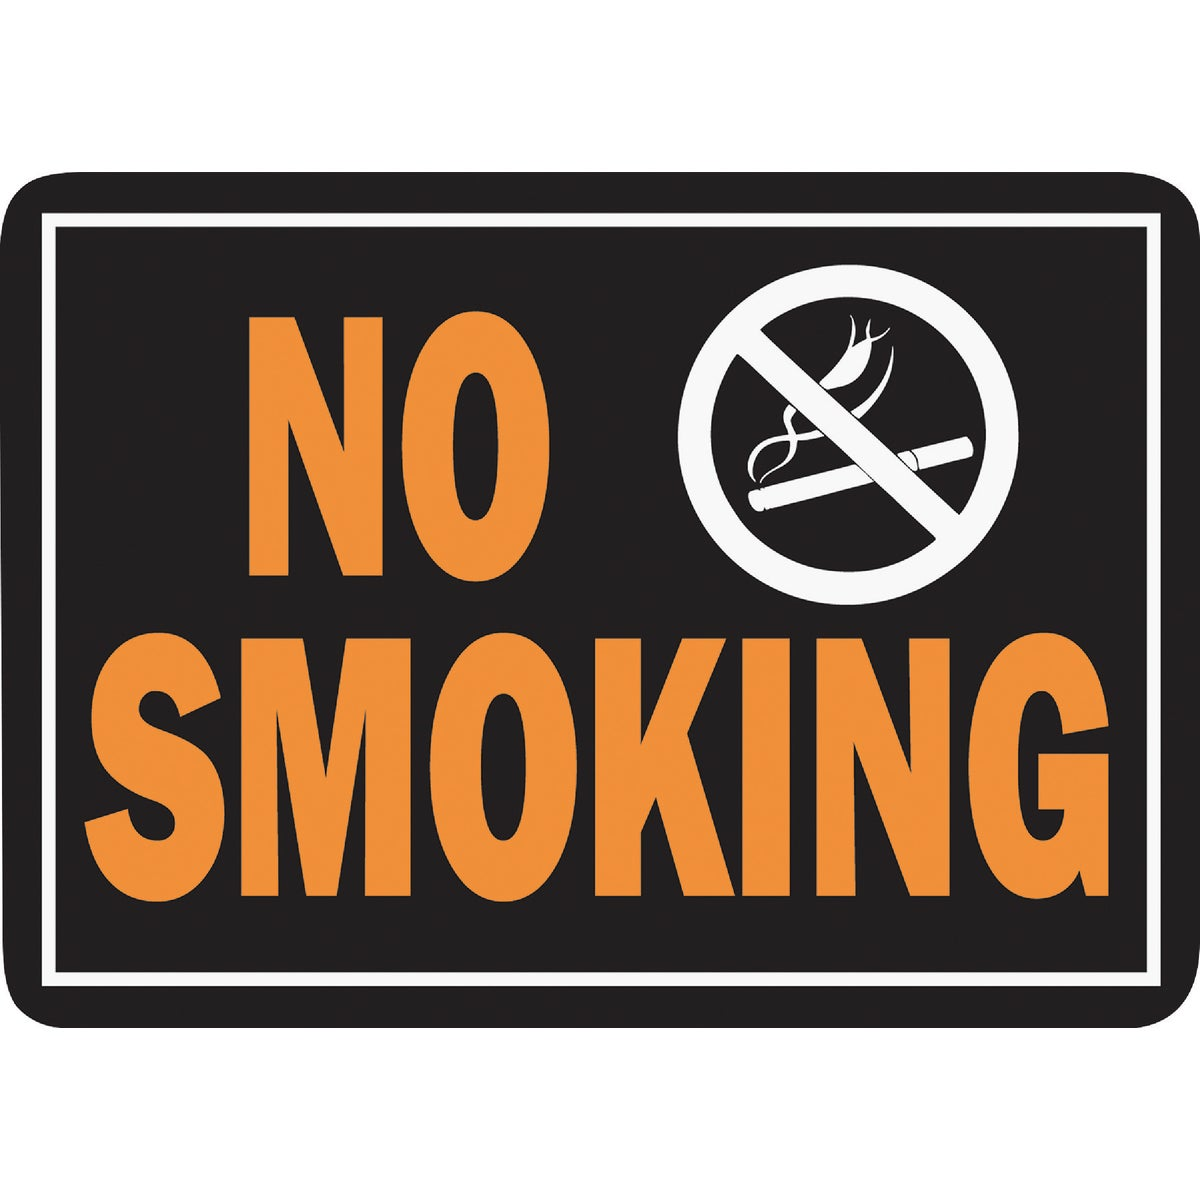 10X14 NO SMOKING SIGN - 811 by Hy Ko Prods Co